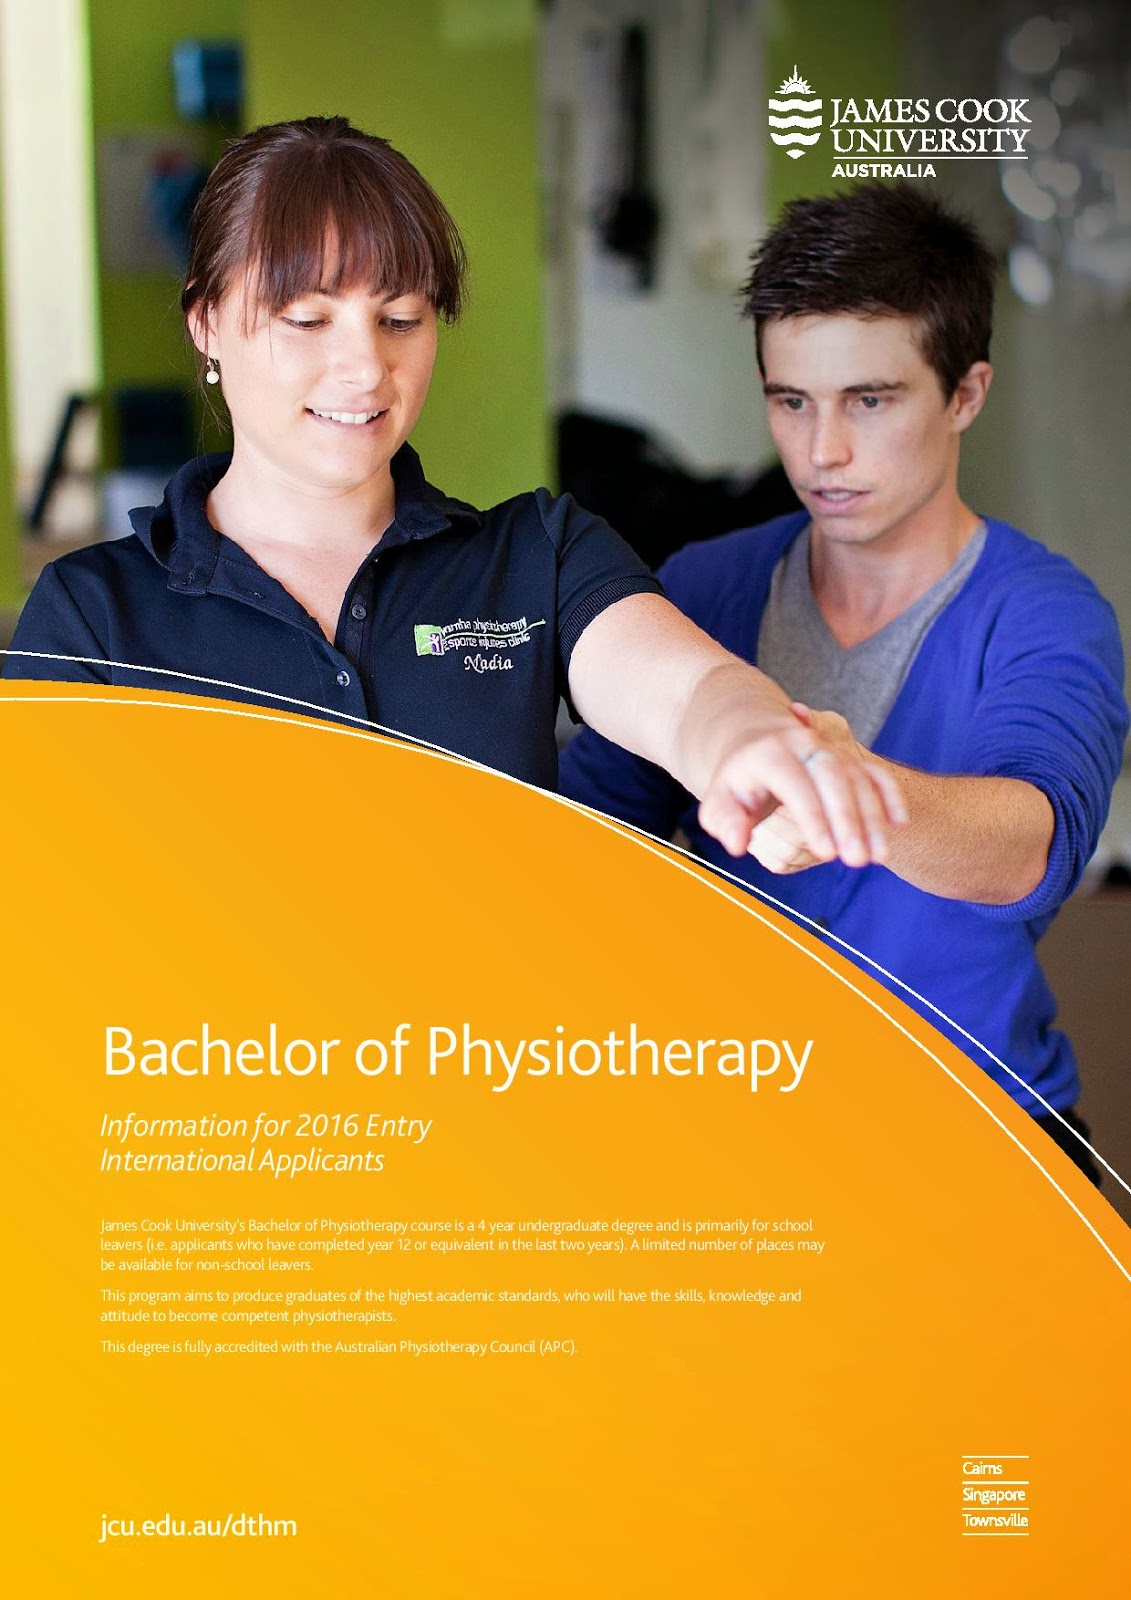 Bachelor of Physiotherapy JM Education Group Education UK